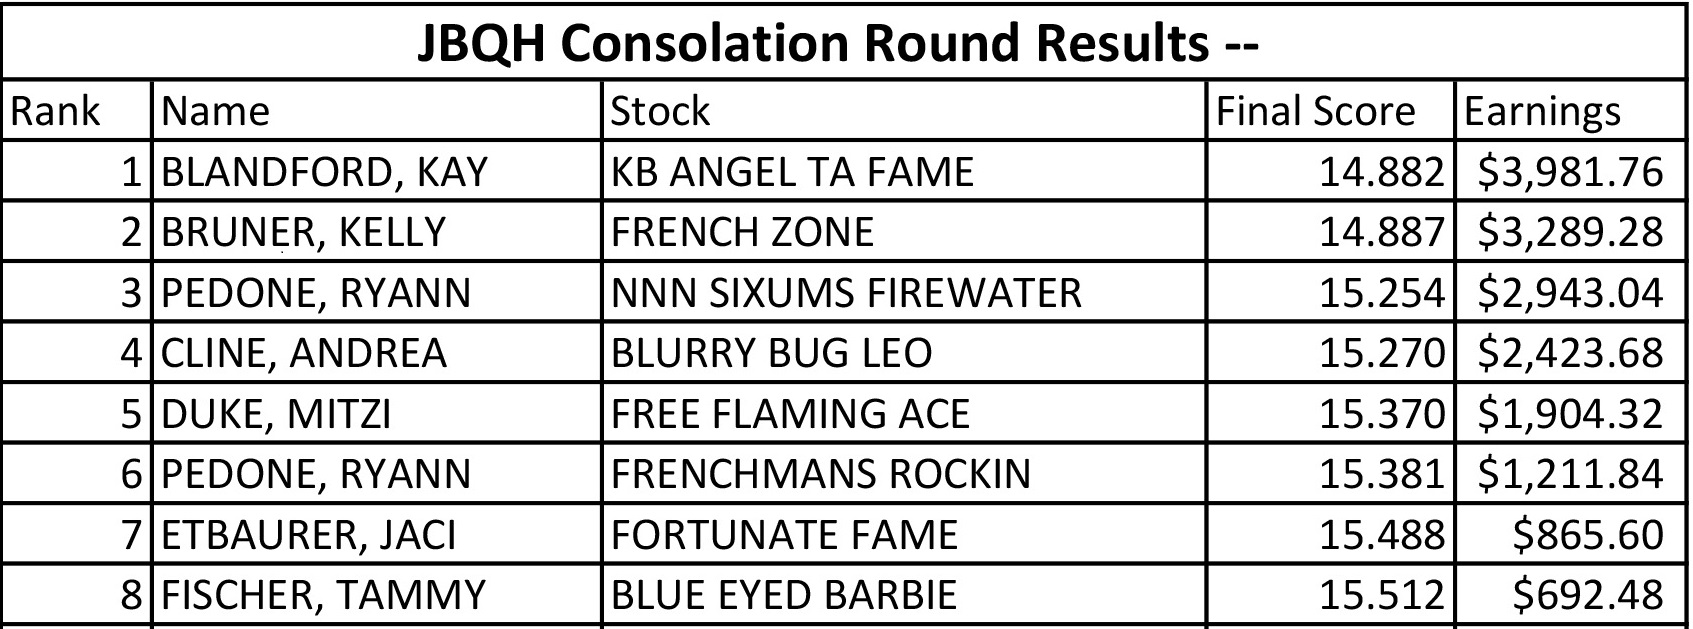 Congratulations to all the JB Futurity Consolation Round Winners. Kelly Bruner and French Zone out of R own broodmare Star Zone turned in a 14.887 good for second place. NNN Sixums Firewater was 3rd and Frenchmans Rockin was 6th.